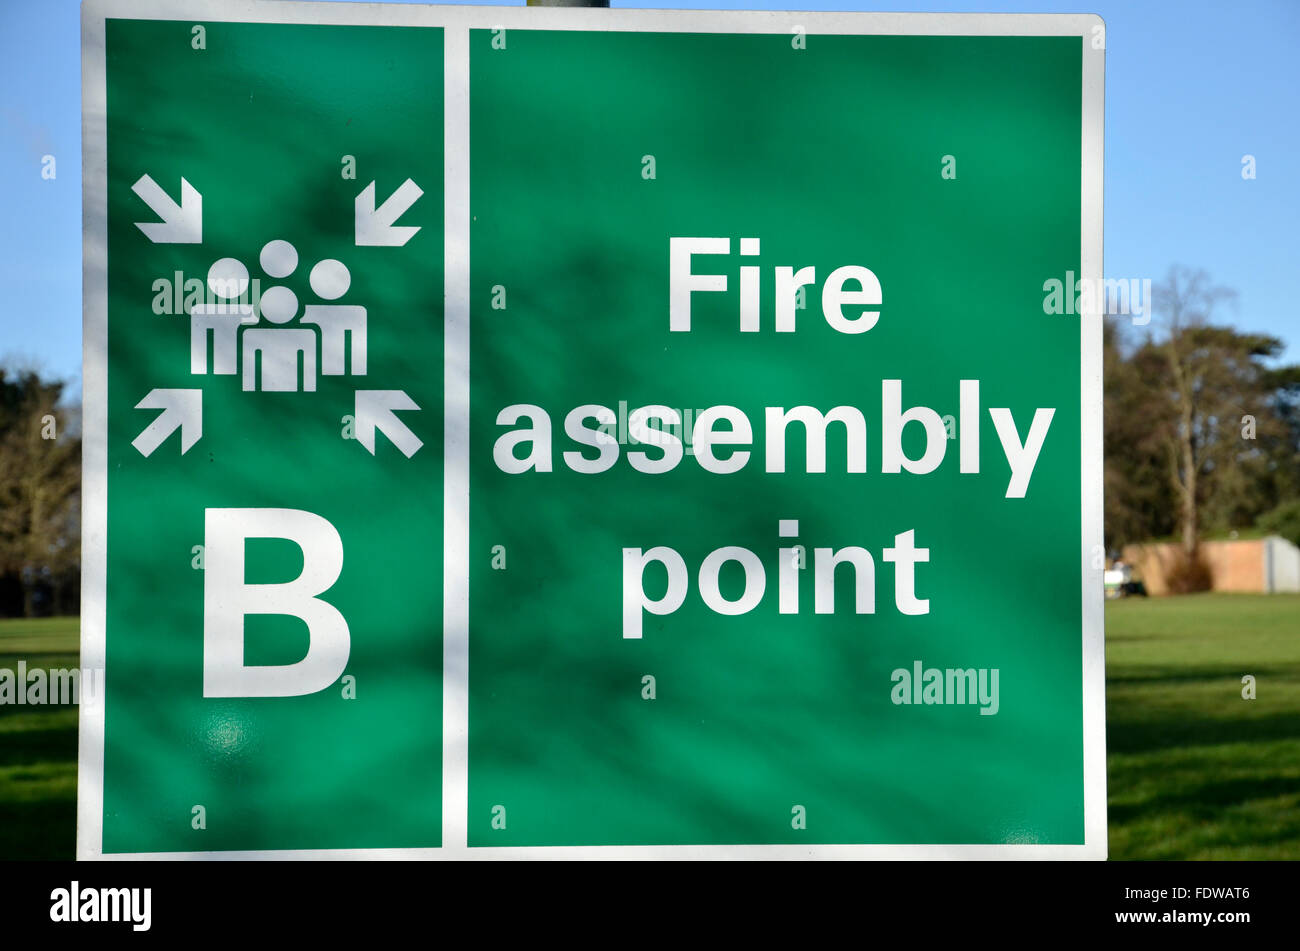 A Fire Assembly Point sign - Stock Image